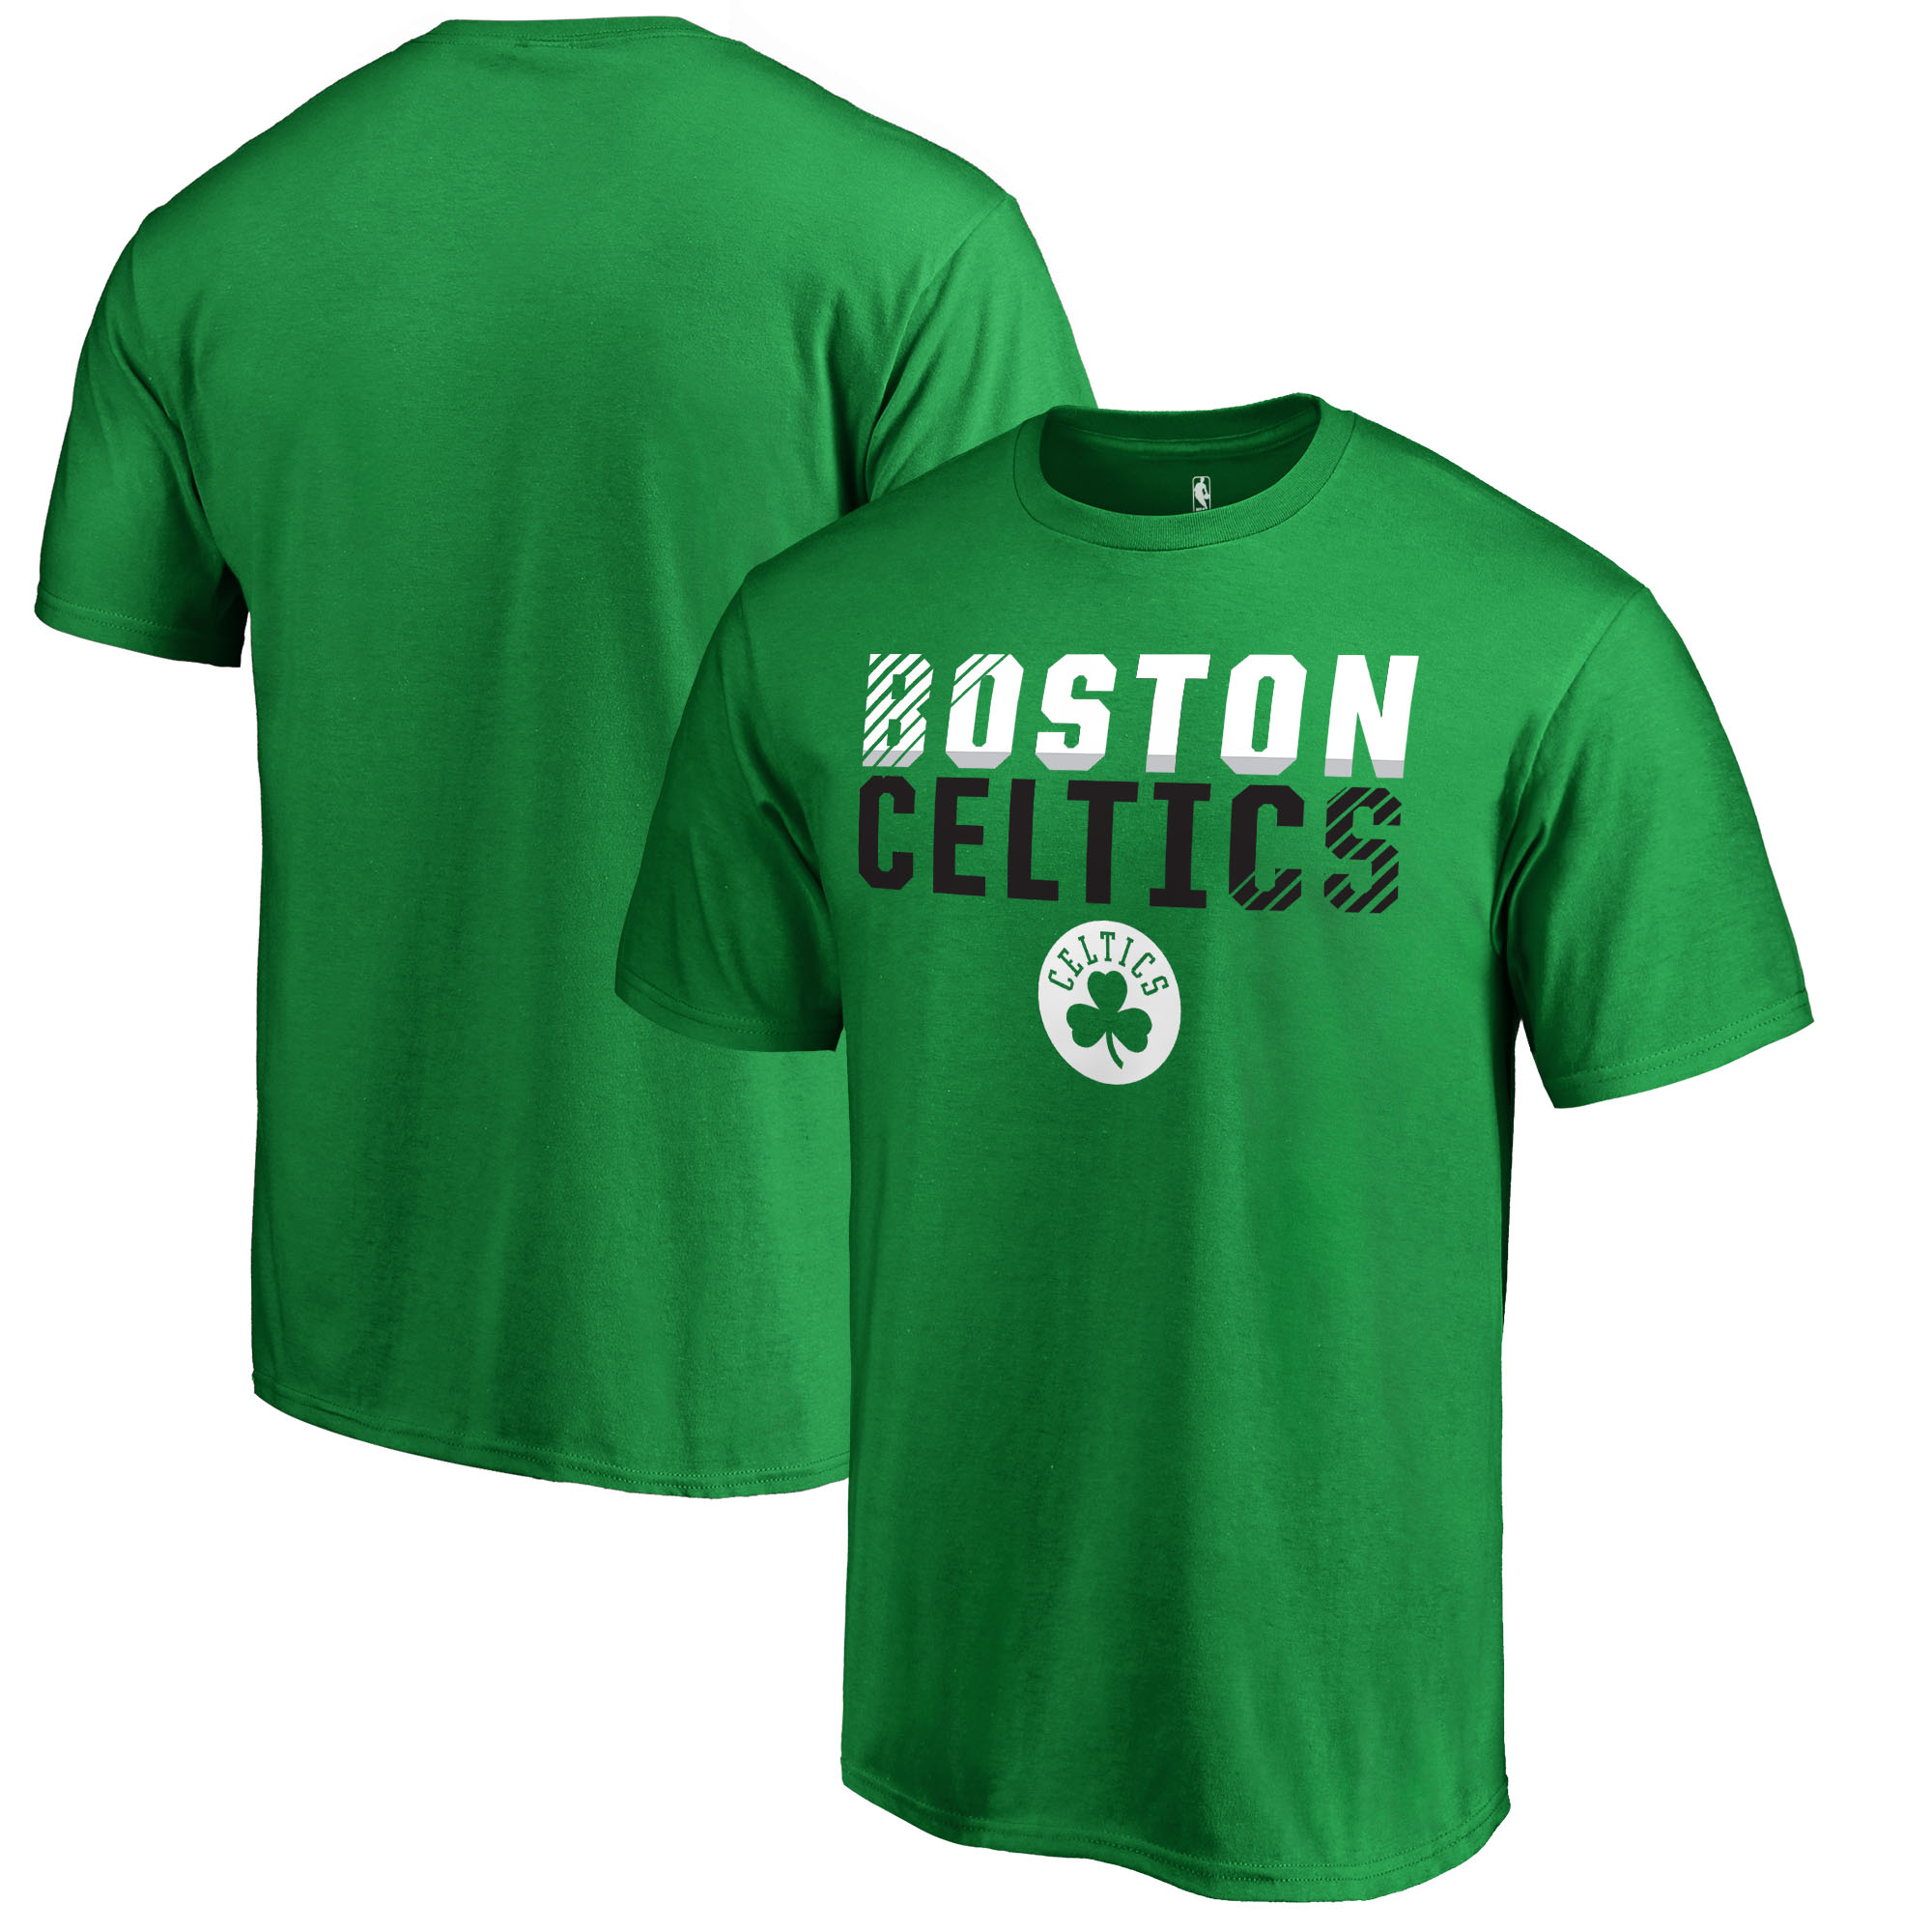 brand new d3dc0 39a8d Boston Celtics Team Shop - Walmart.com